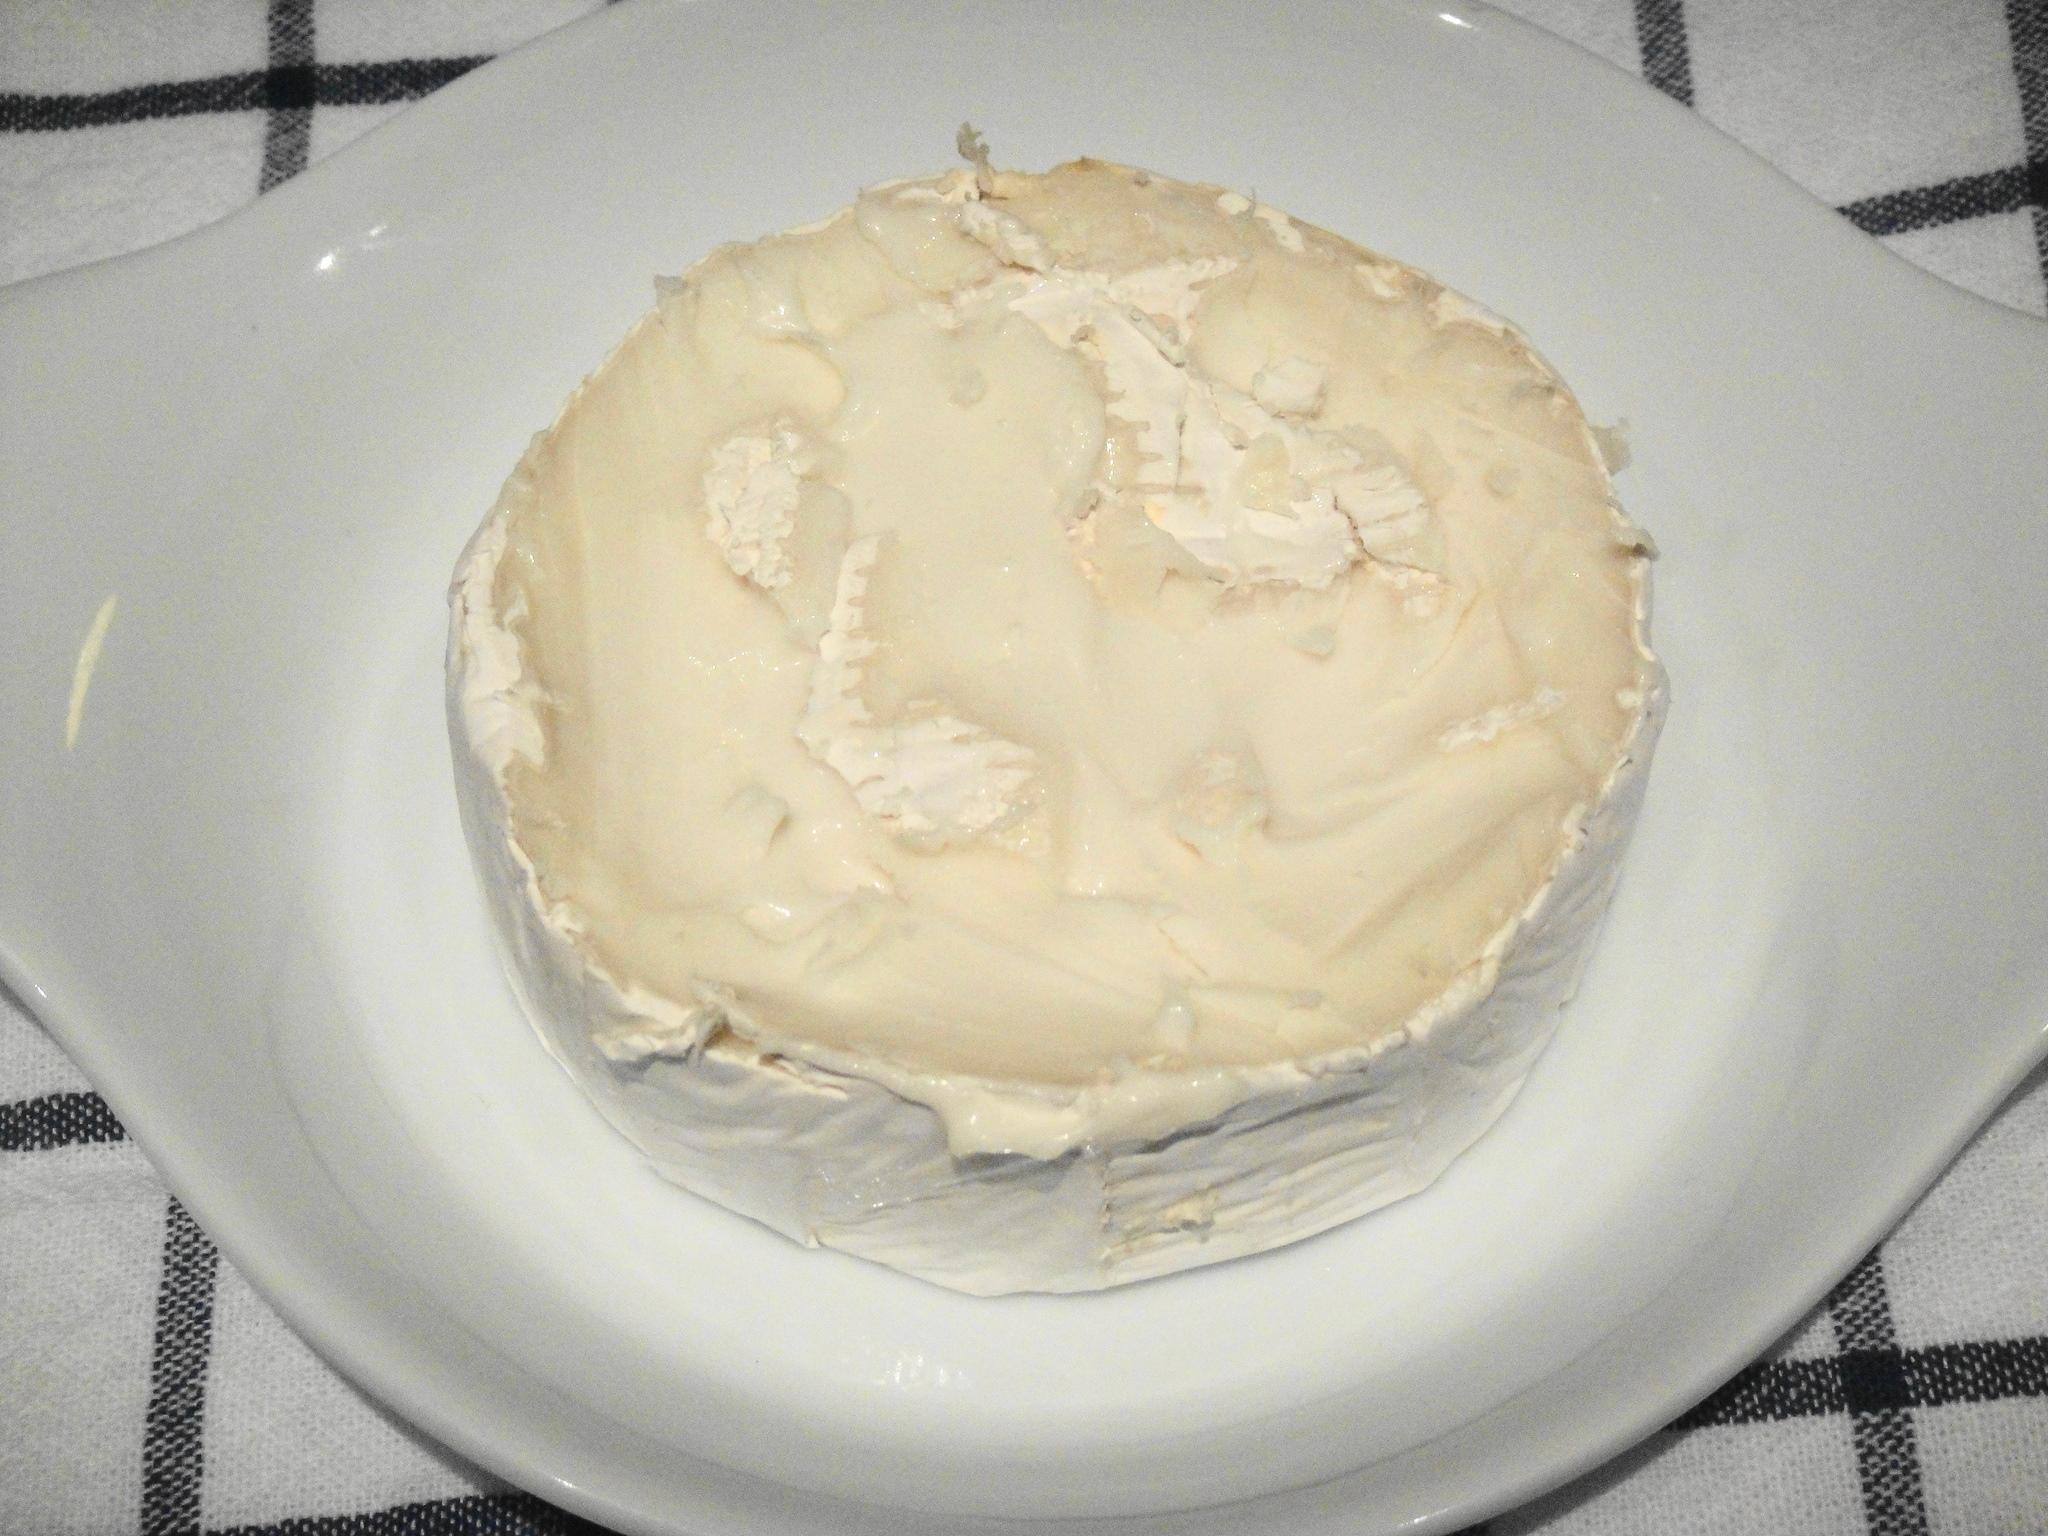 brie with top rind removed